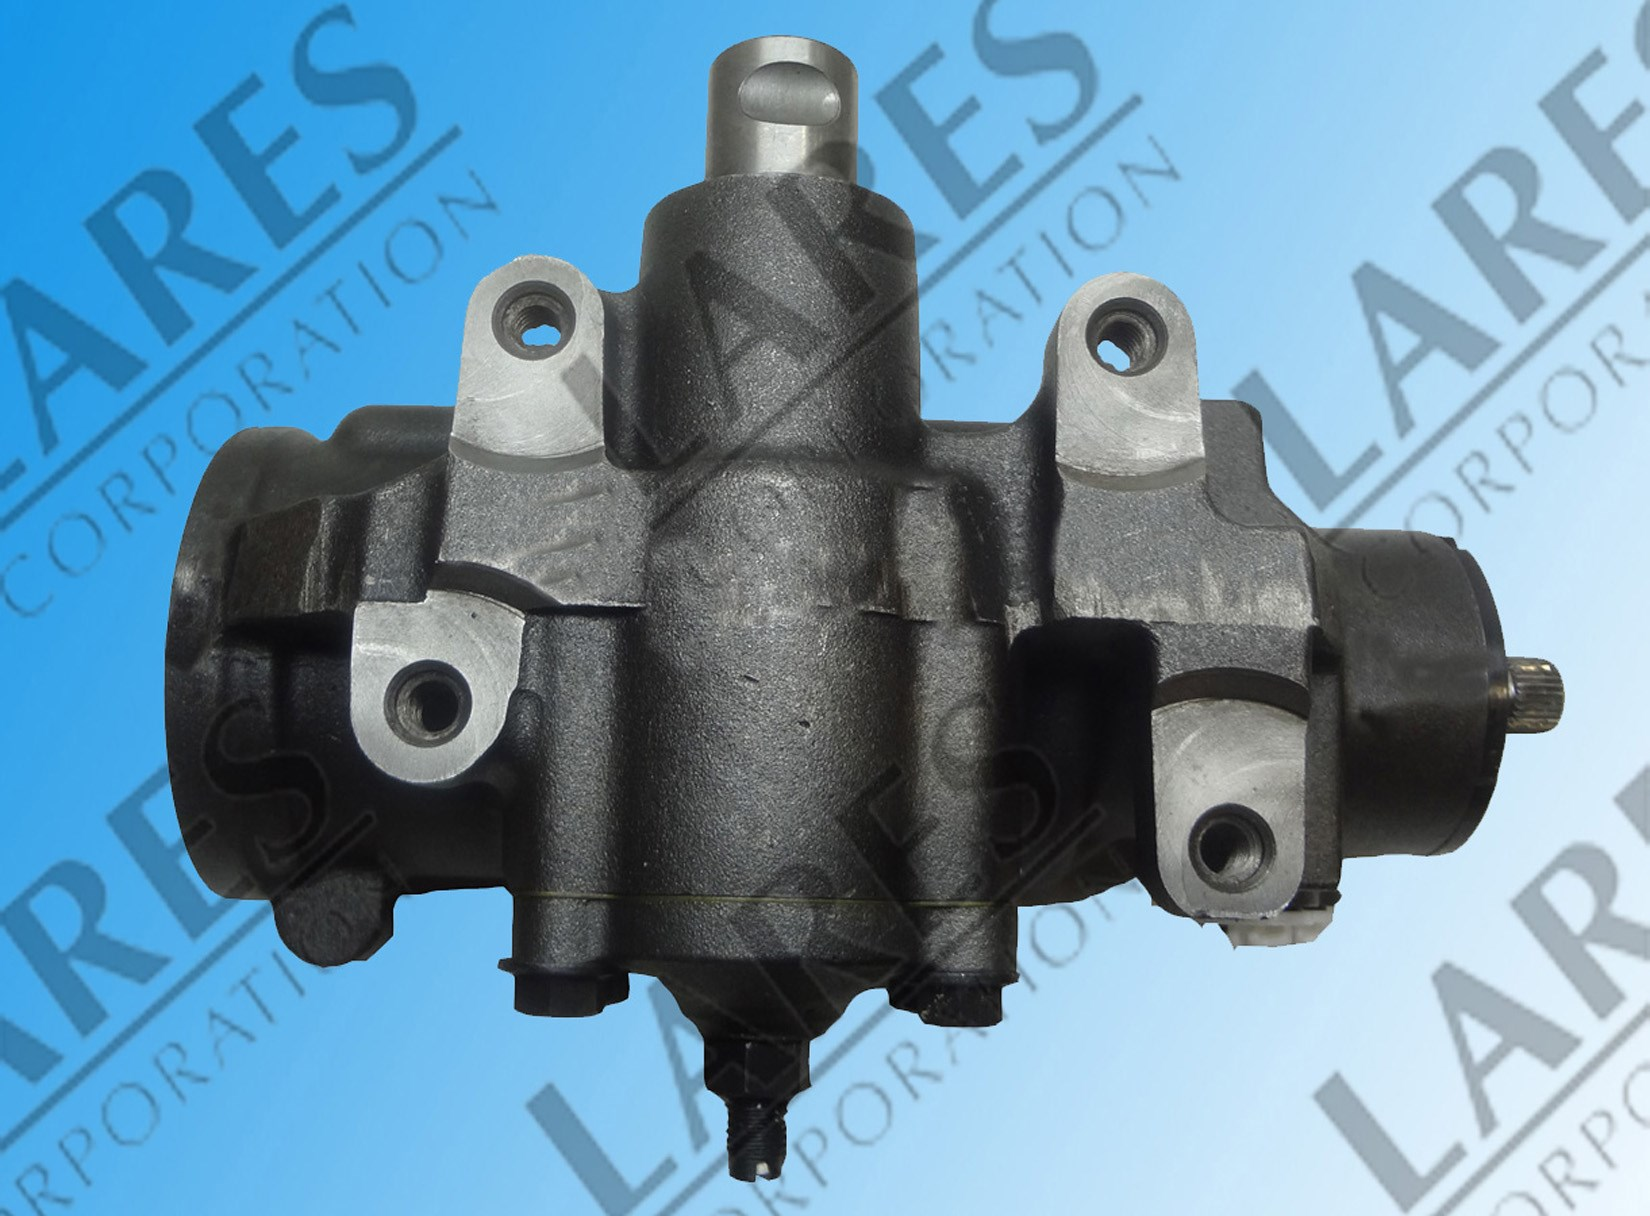 Power Steering Gear, Part No. 11249-a